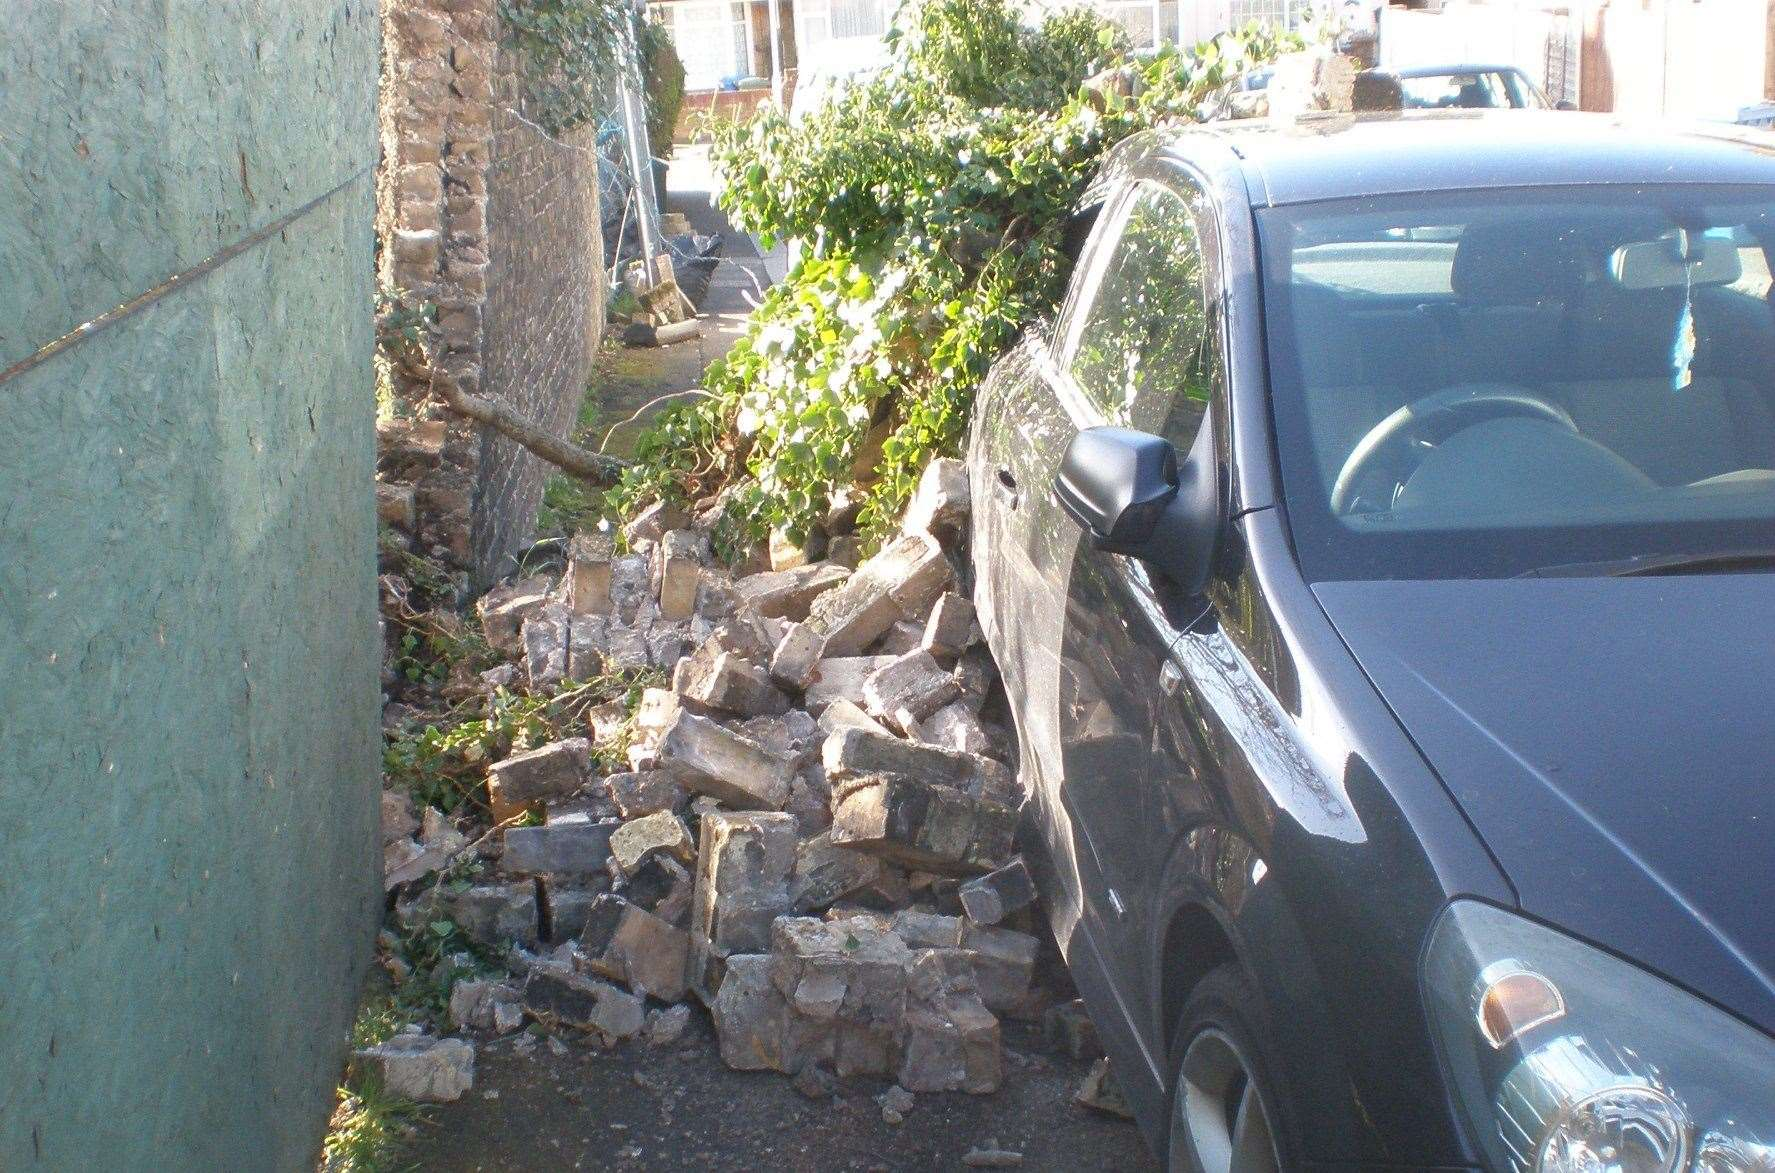 The wall collapsed on the car in Thomas Road, Sittingbourne. Picture: Ian Maggs